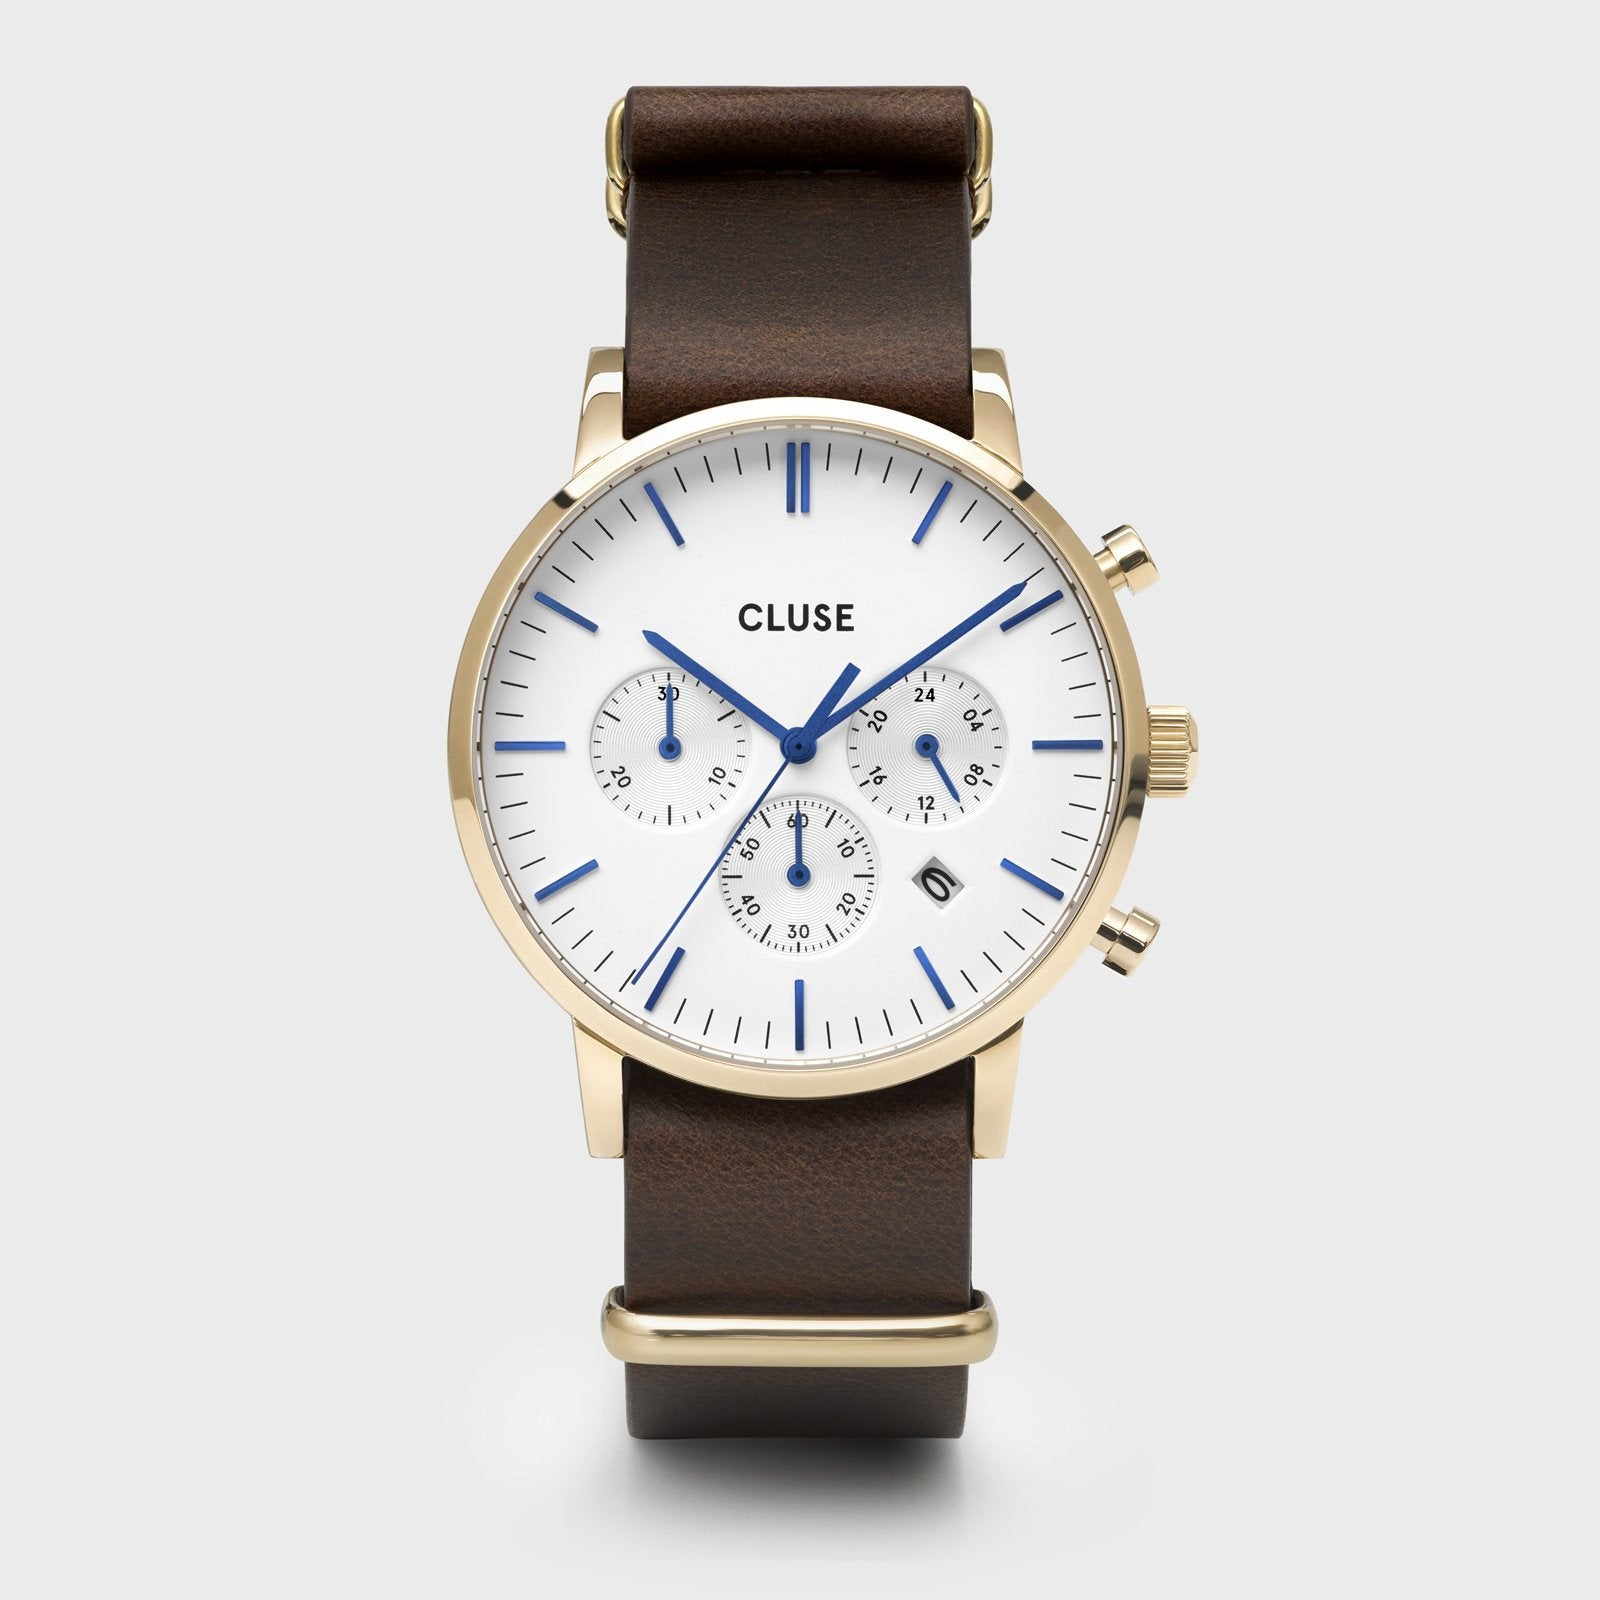 CLUSE Aravis chrono nato leather gold white/dark brown CW0101502009 - Watch